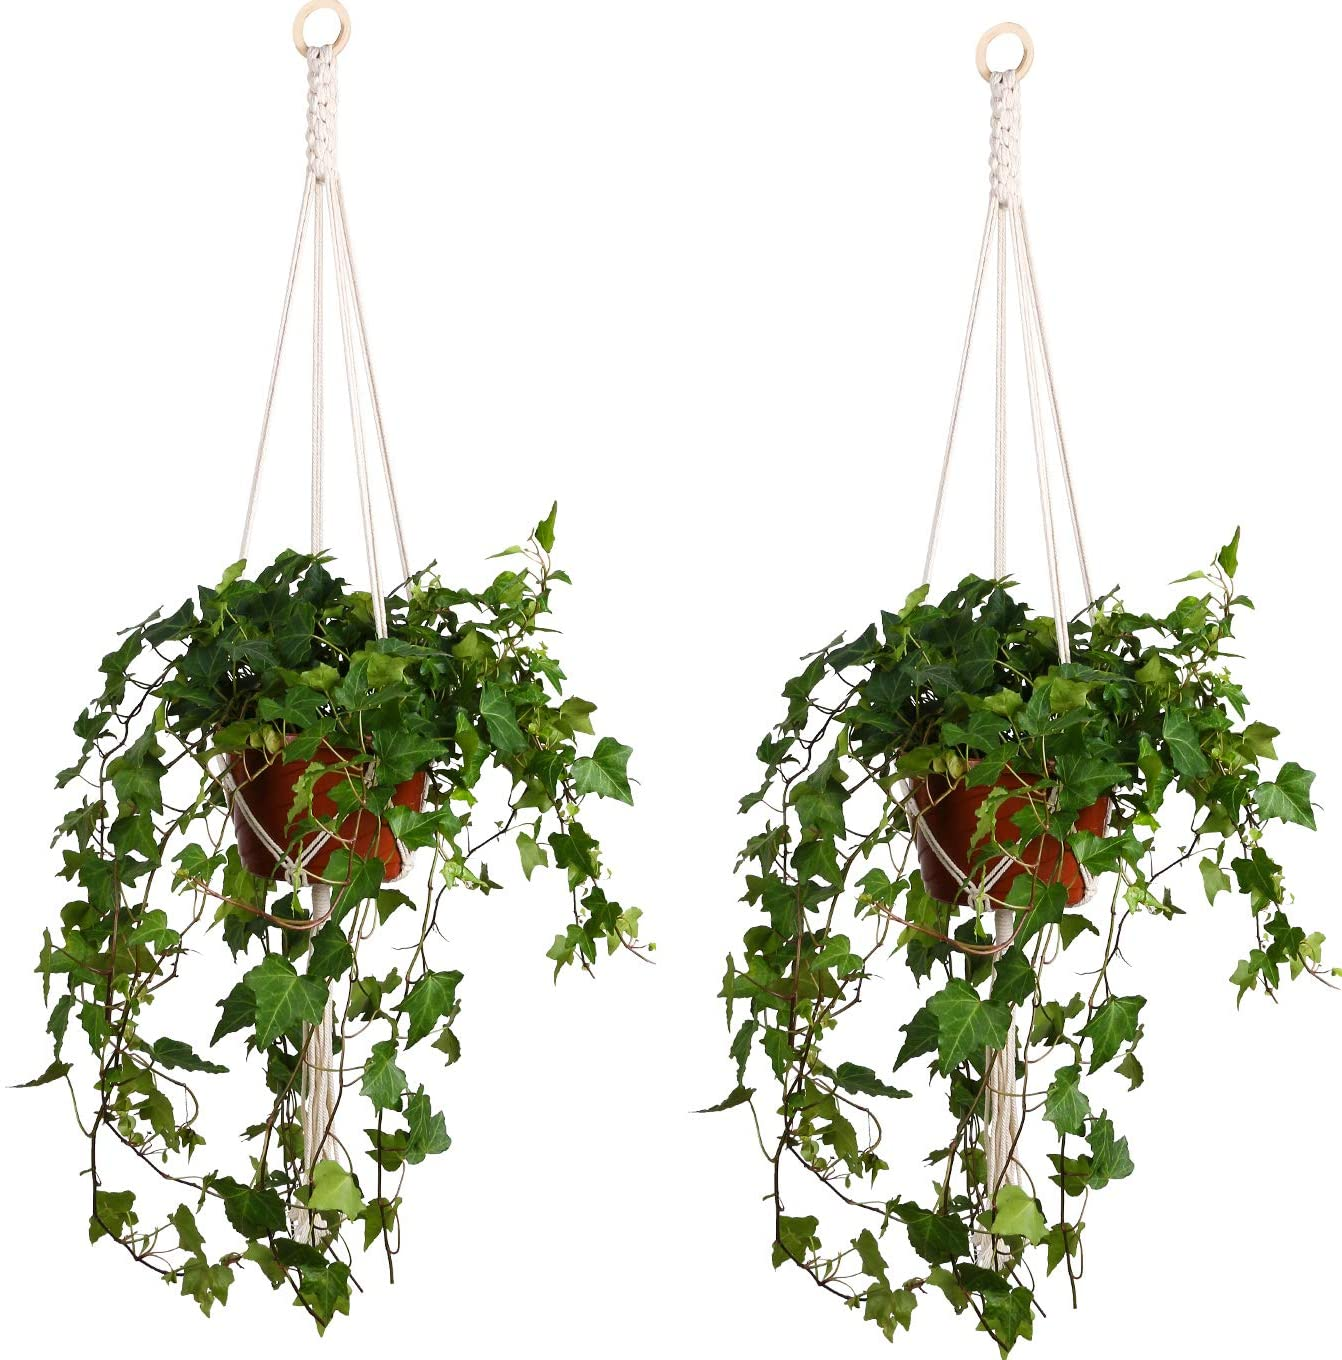 Lanker Plant Hanger Indoor Outdoor Hanging Planter Basket Cotton Rope with Beads 41Inch 2 Pcs KD09B